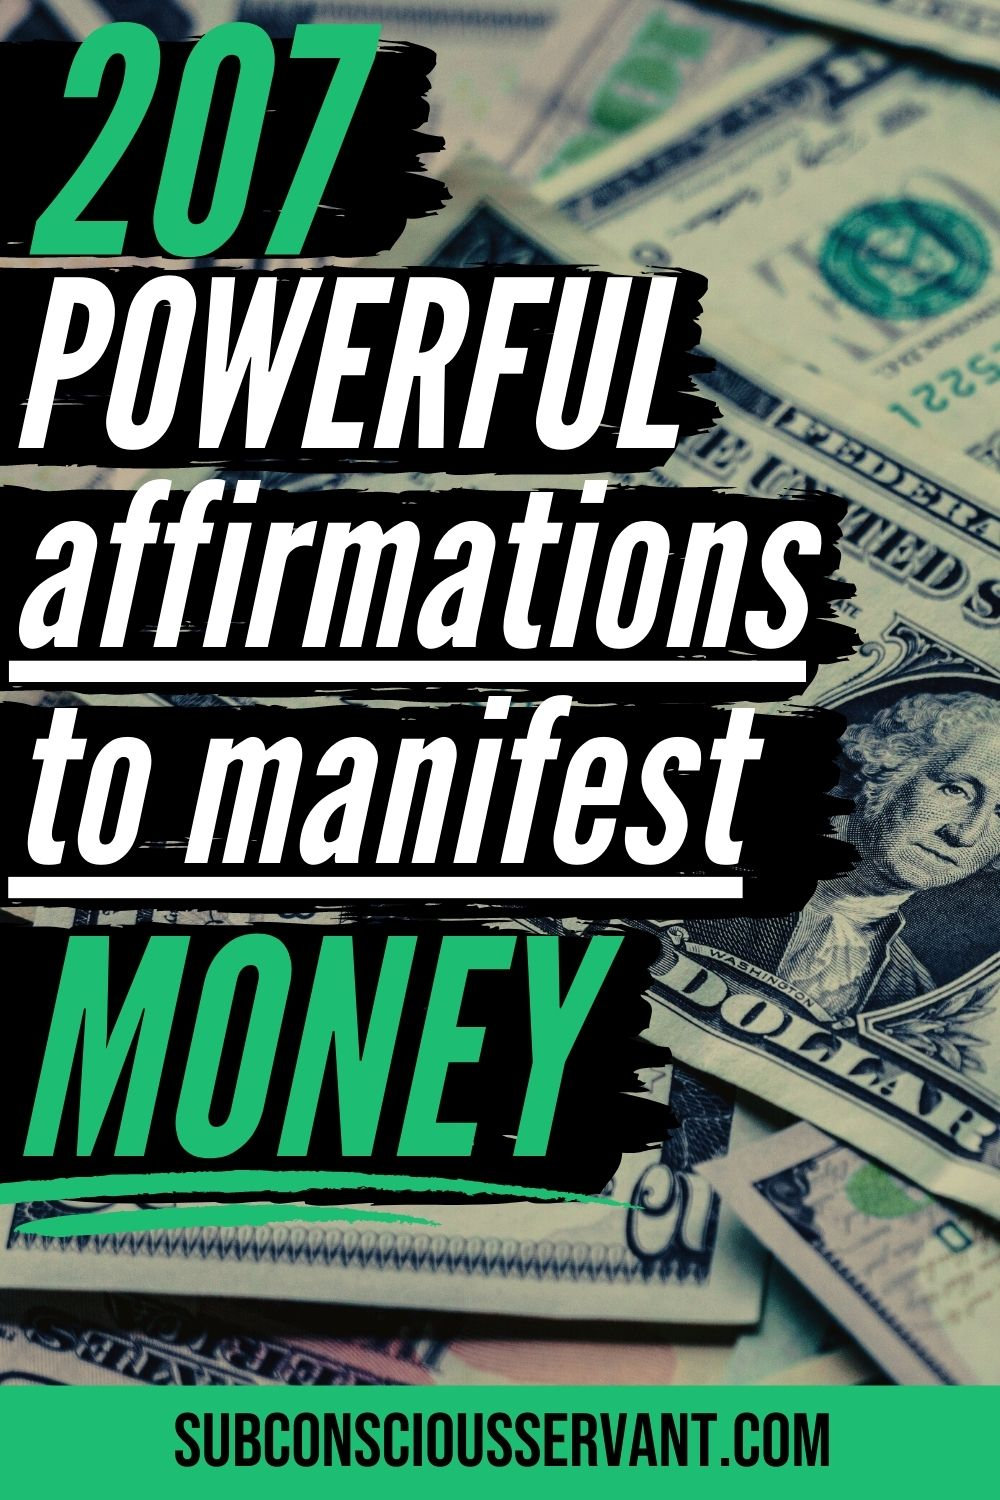 207 POWERFUL Affirmations For Money (Including Shareable Images)